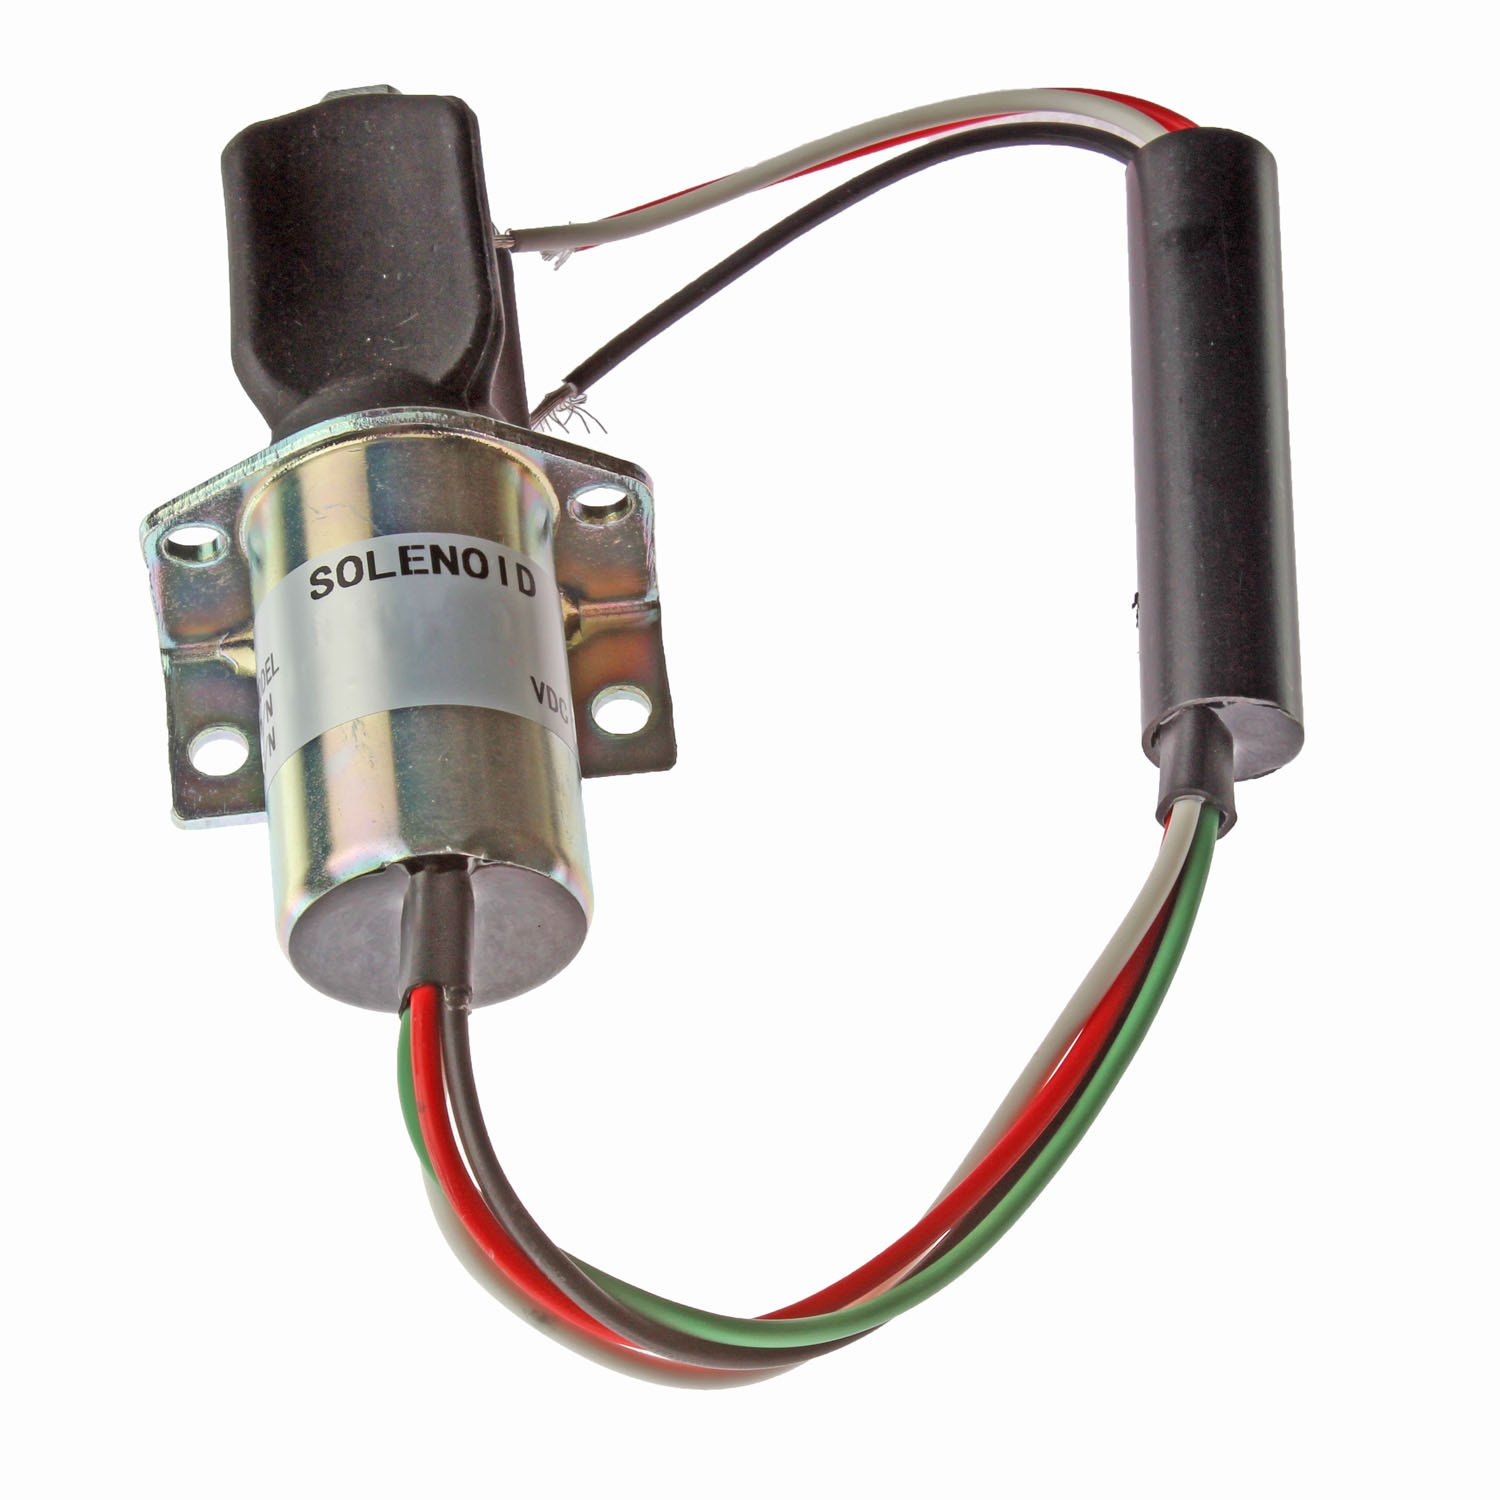 Mover Parts Electric Solenoid Valve 10871 for Corsa Electric Captain's Call Systems 3-Wire